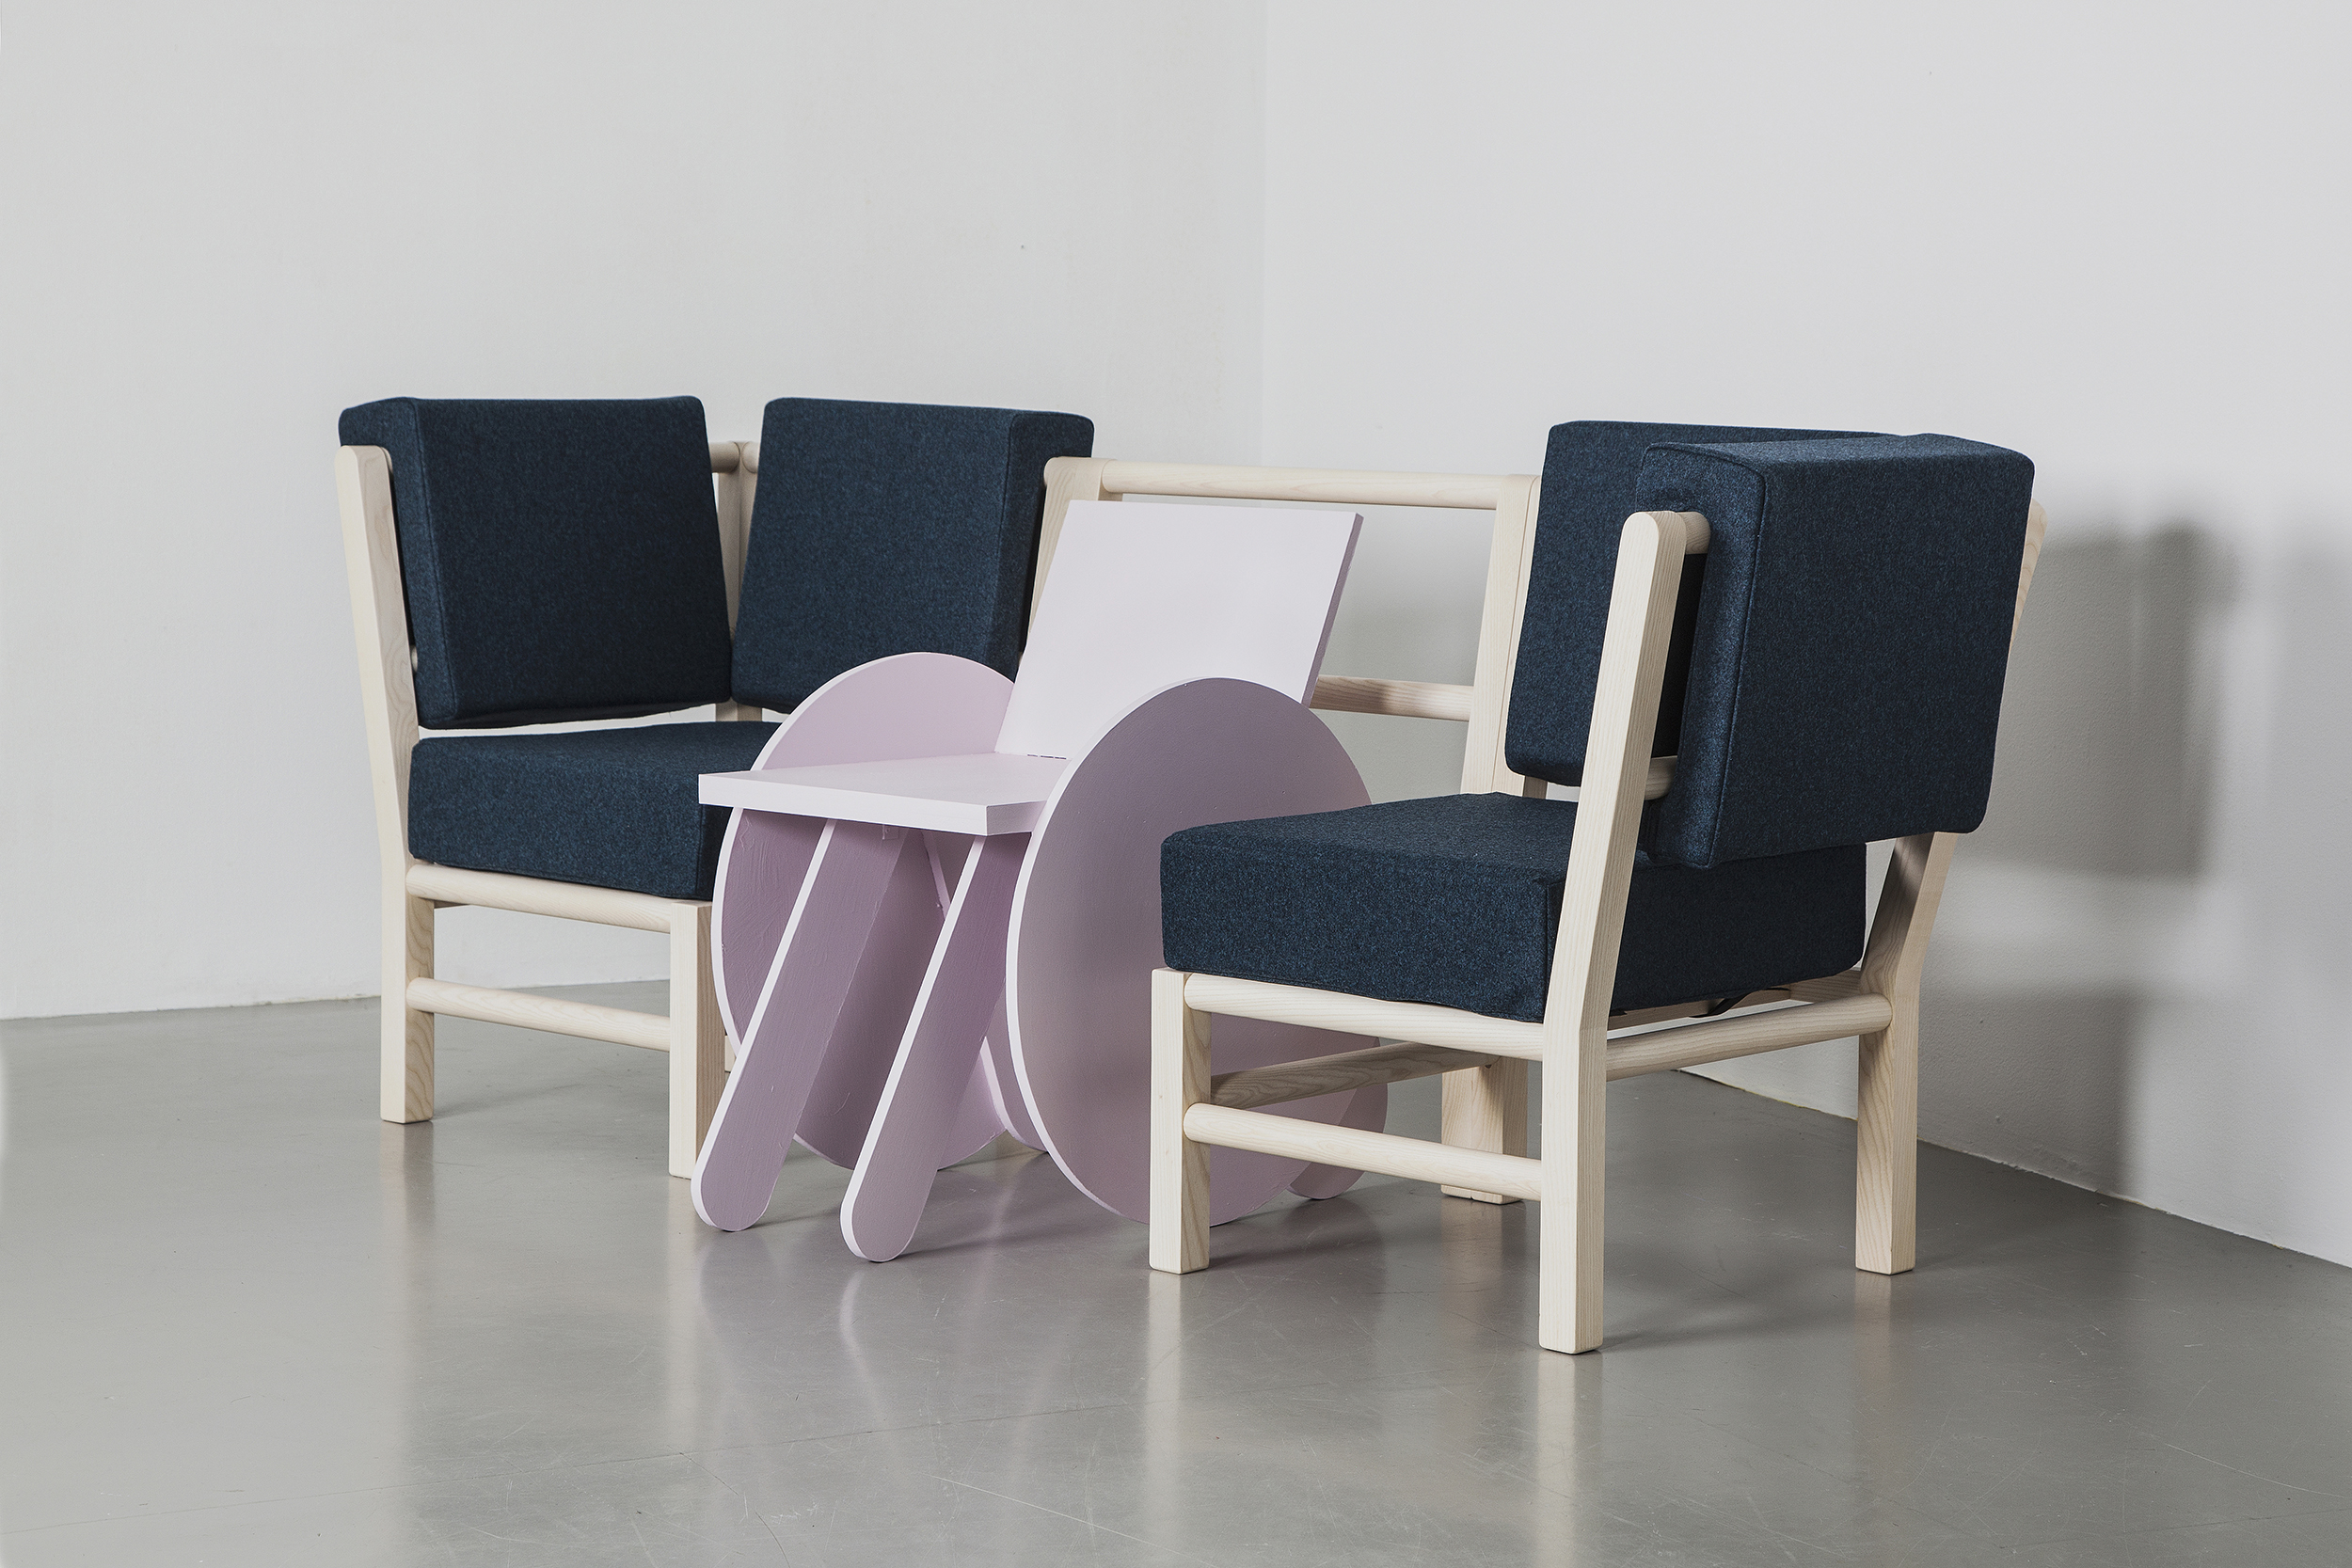 September 2018  Nordic Care Behind The Product: Be A Part Of   Have you ever wondered how a product idea is born? It can sometimes take an extensive collection of life experiences to inspire even the most simple of designs. This month highlight the inspiring story behind 'Be A Part Of' designed by Ella Westlund. This product is now available through Nordic Care.